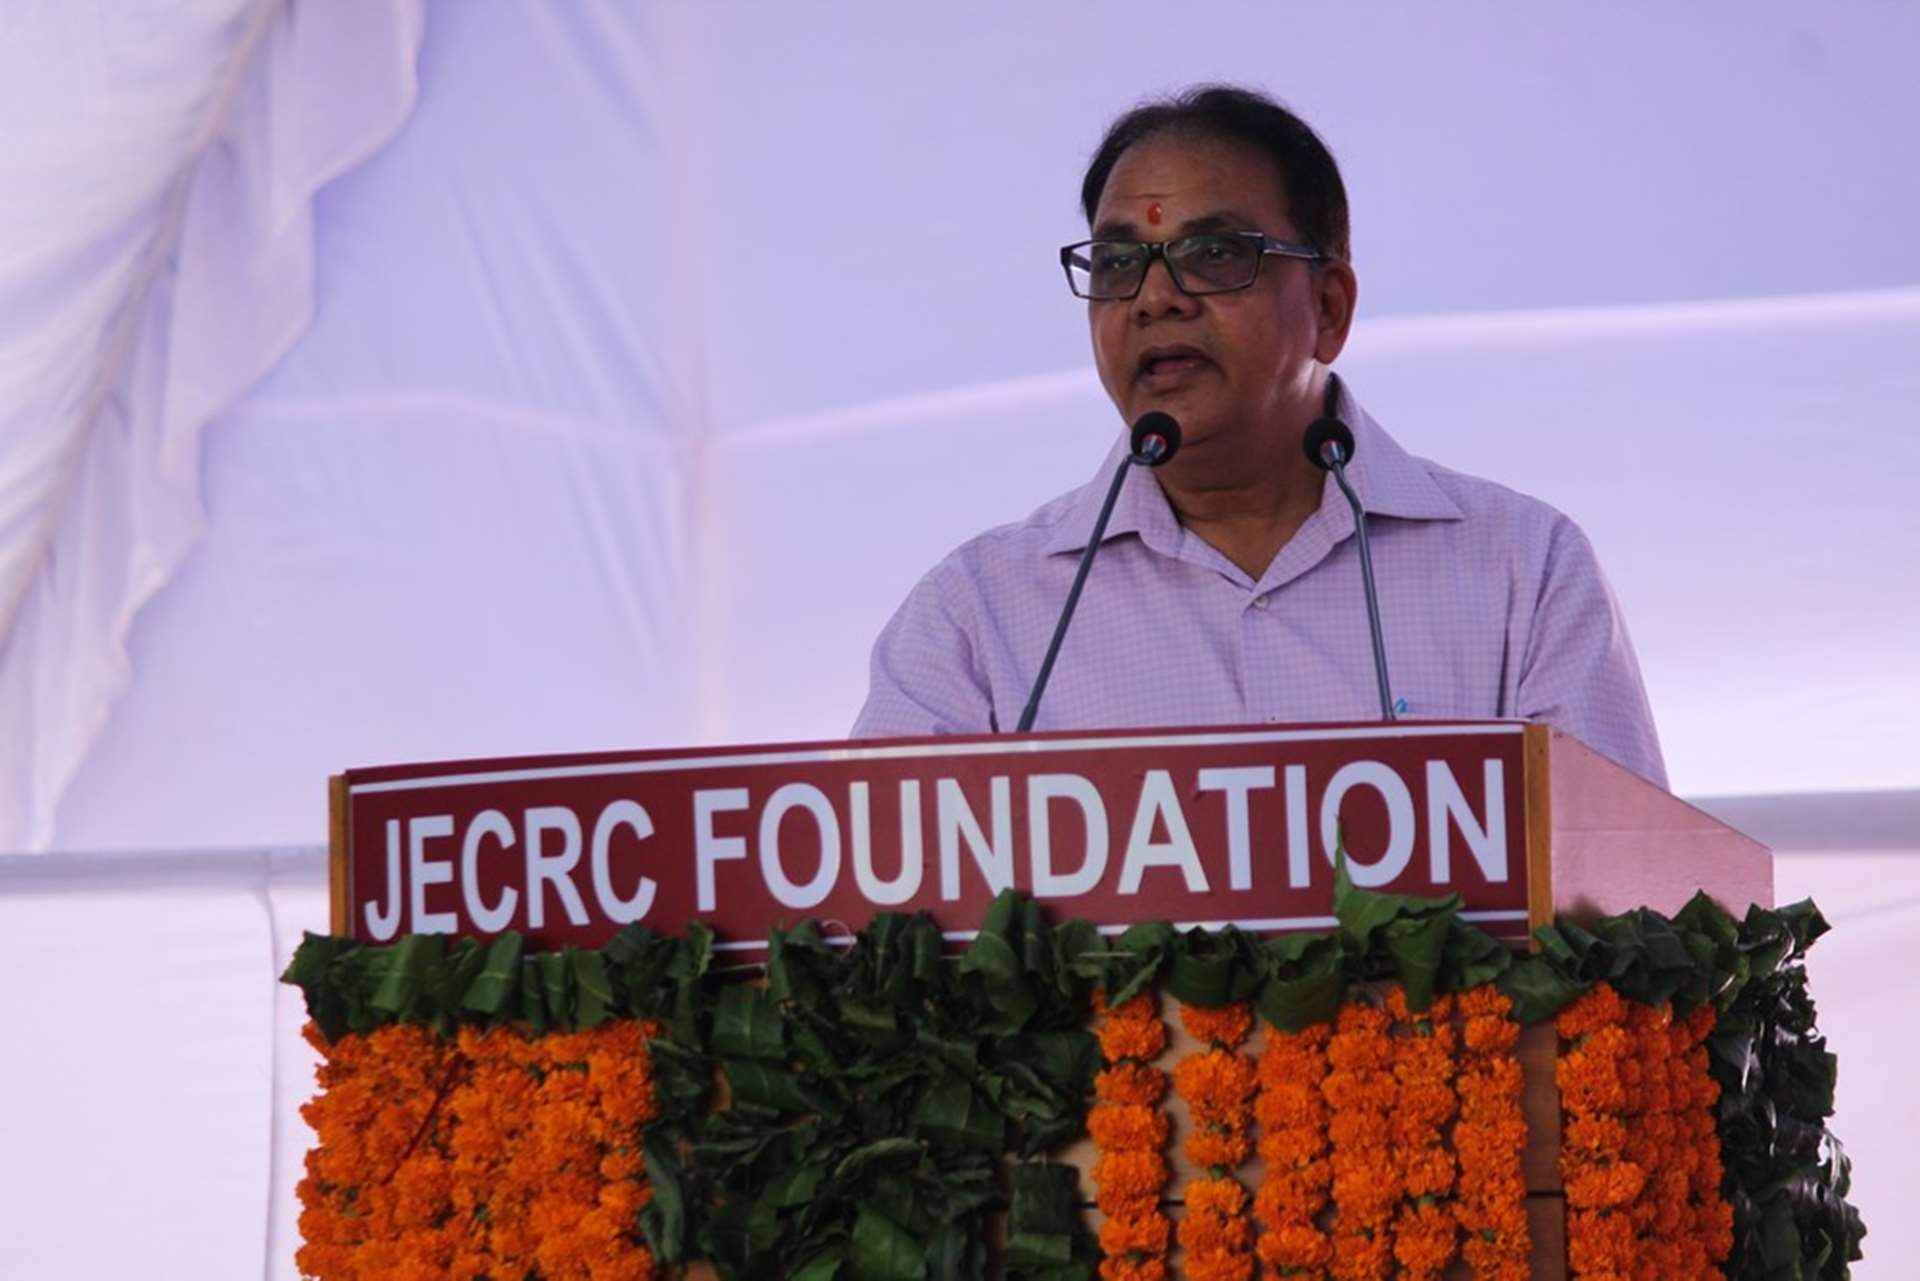 JECRC Foundation